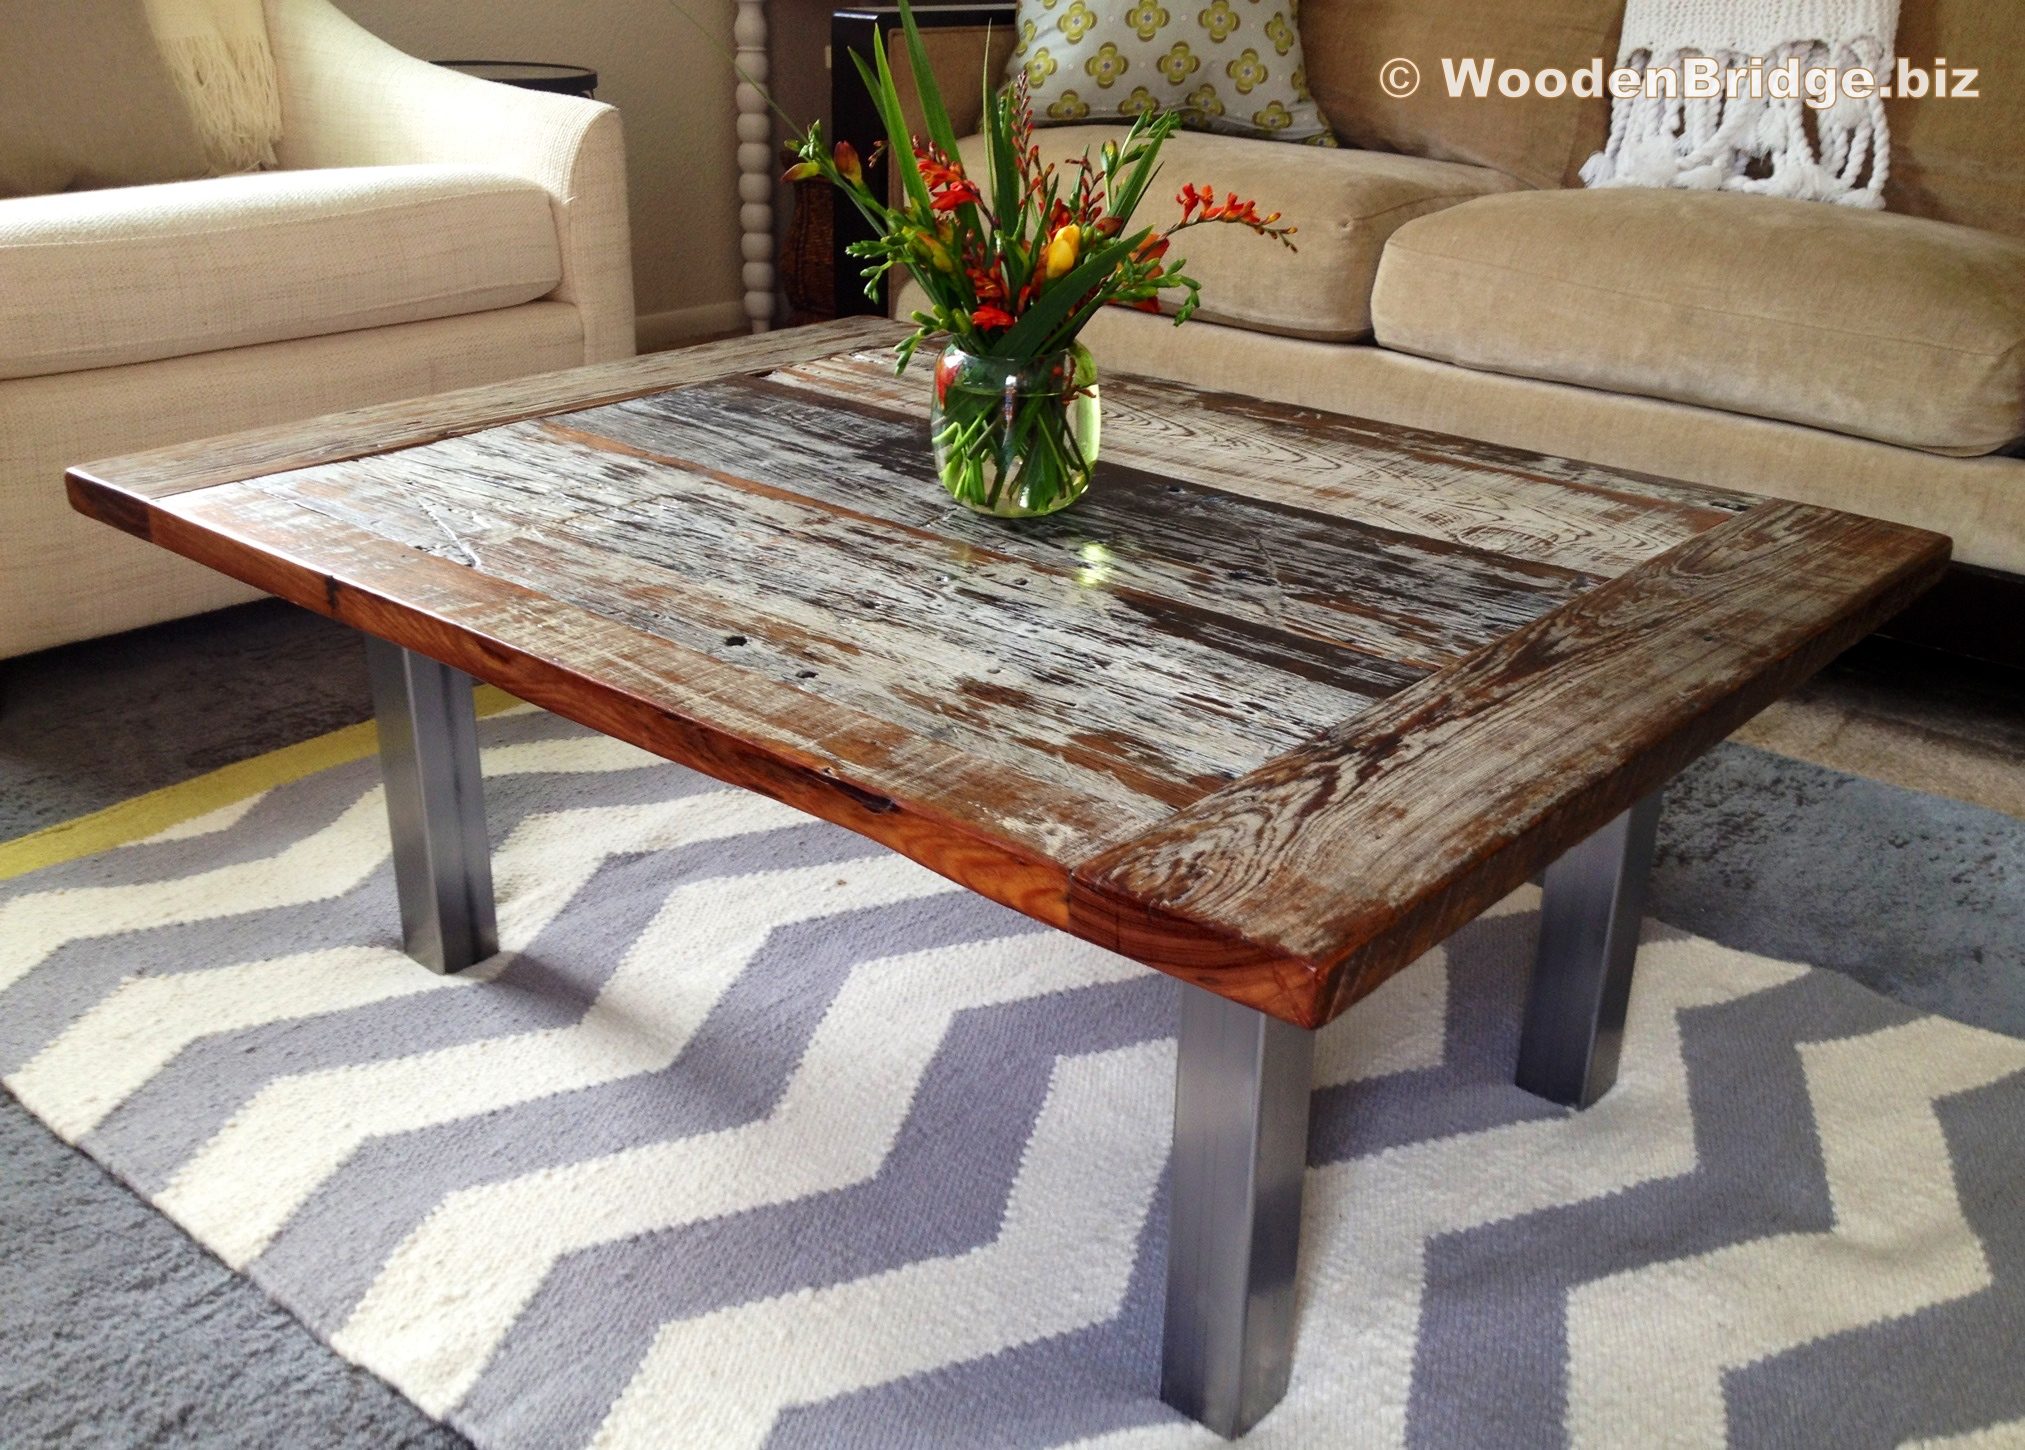 Reclaimed Wood Coffee Tables Ideas – 2025 x 1450